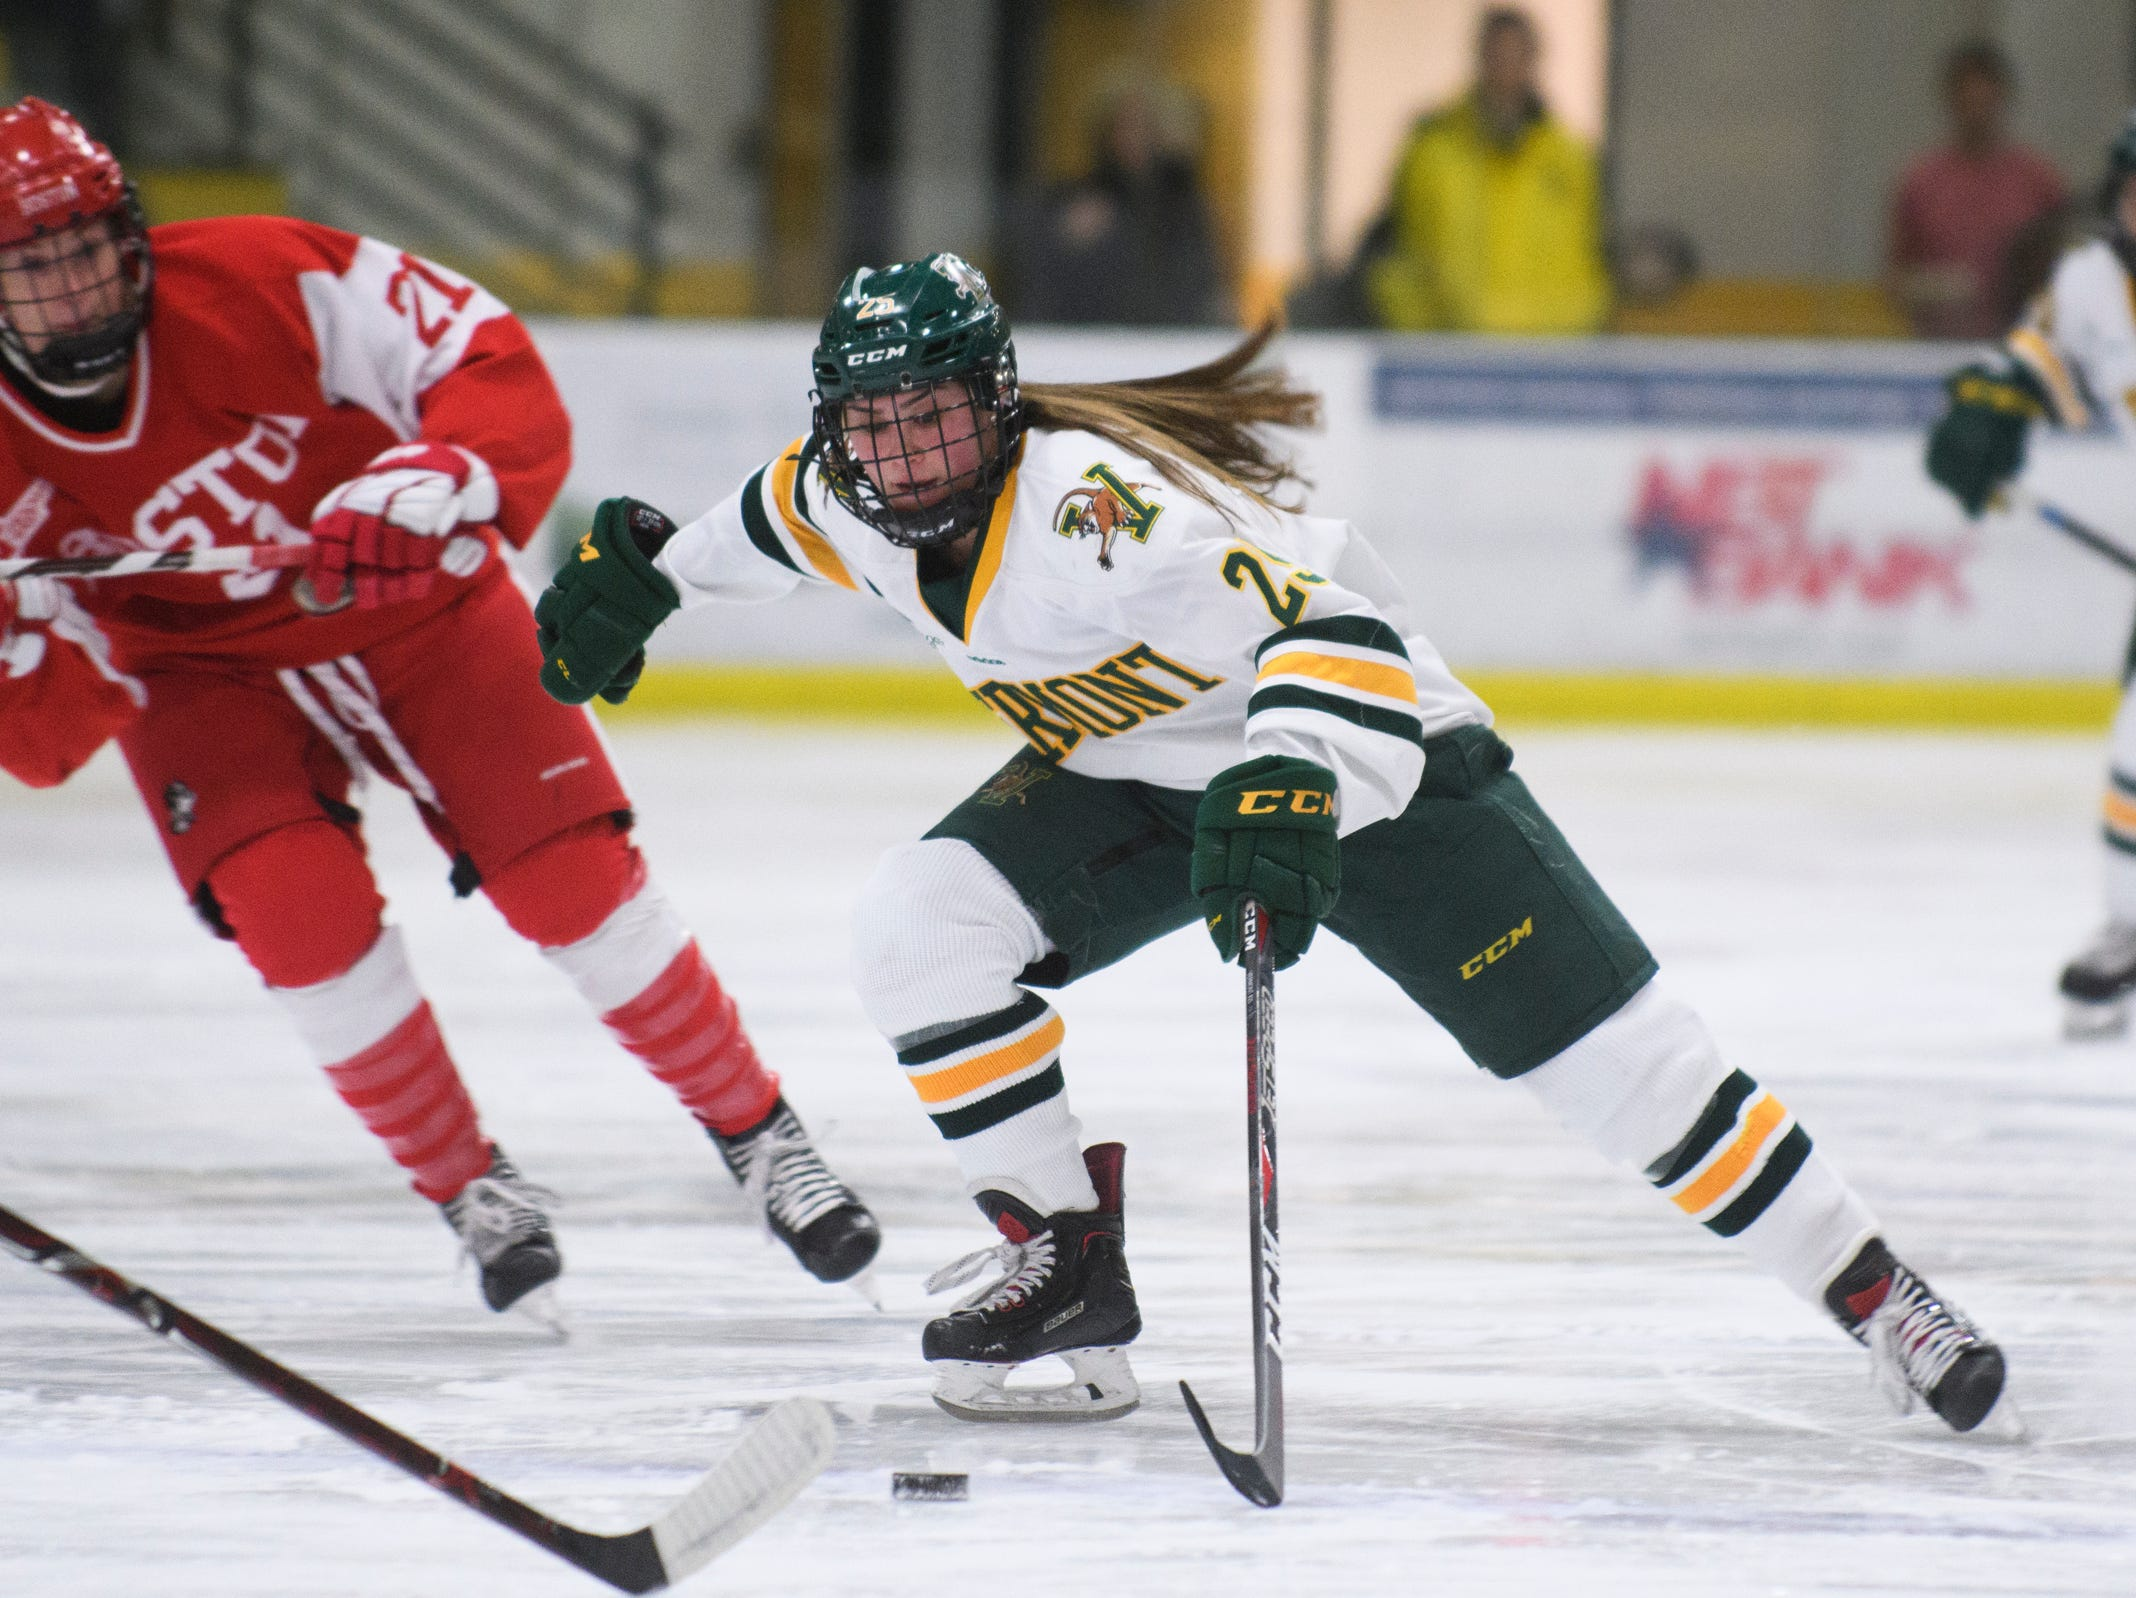 Vermont's Alyssa Holmes (25) skates down the ice with the puck during the women's hockey game between the Boston Terriers and the Vermont Catamounts at Gutterson Field House on Friday night February 1, 2019 in Burlington, Vermont.